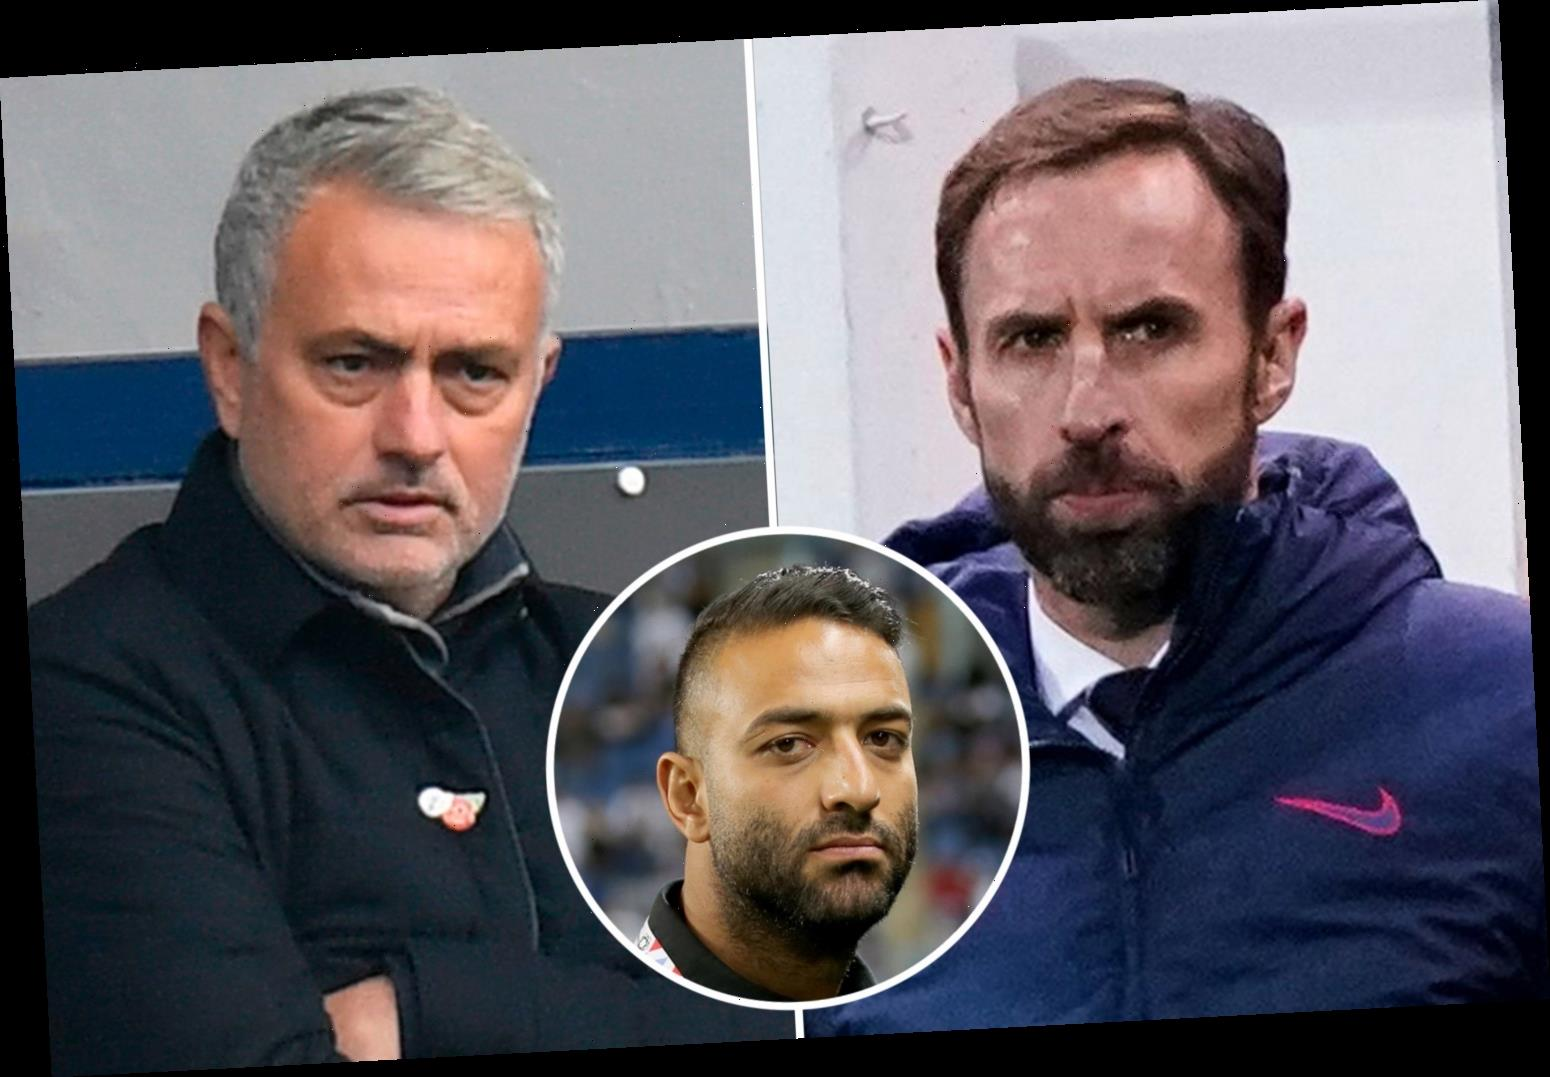 Ex-Middlesbrough star Mido tells England to SACK Southgate and hire Jose Mourinho for Euro 2020 in astonishing rant